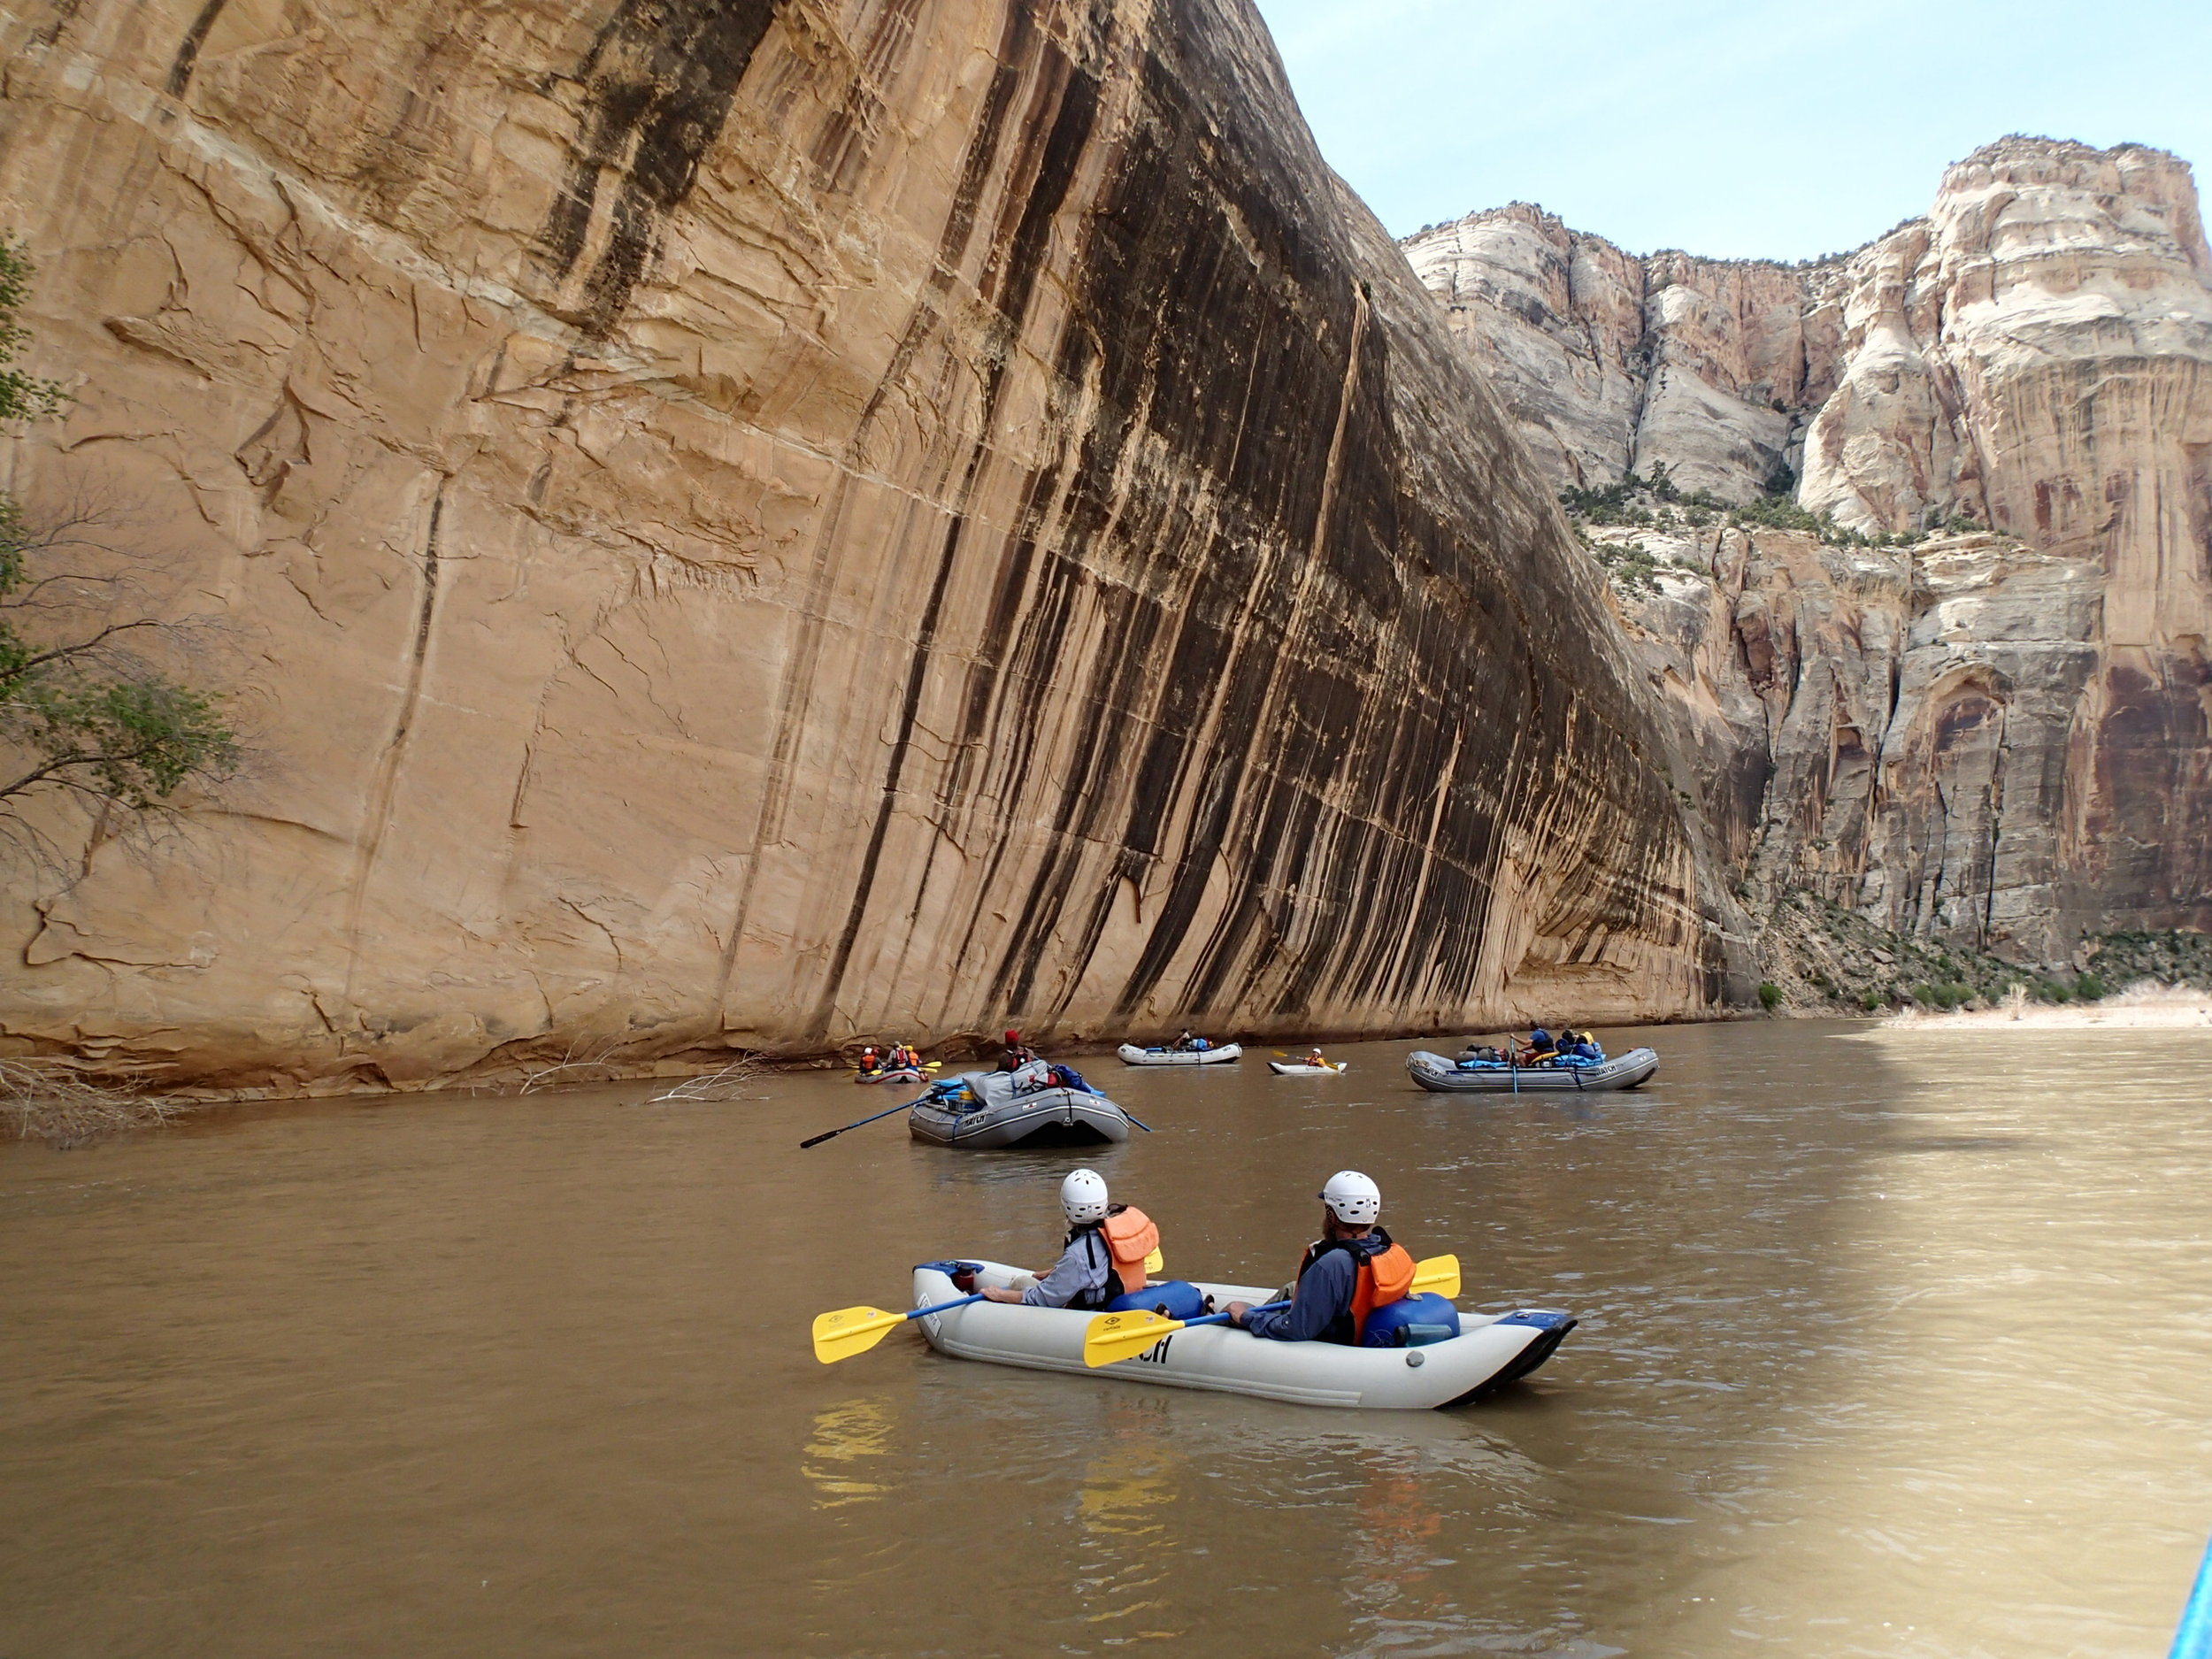 Rafting the Yampa River with AdventureLocals